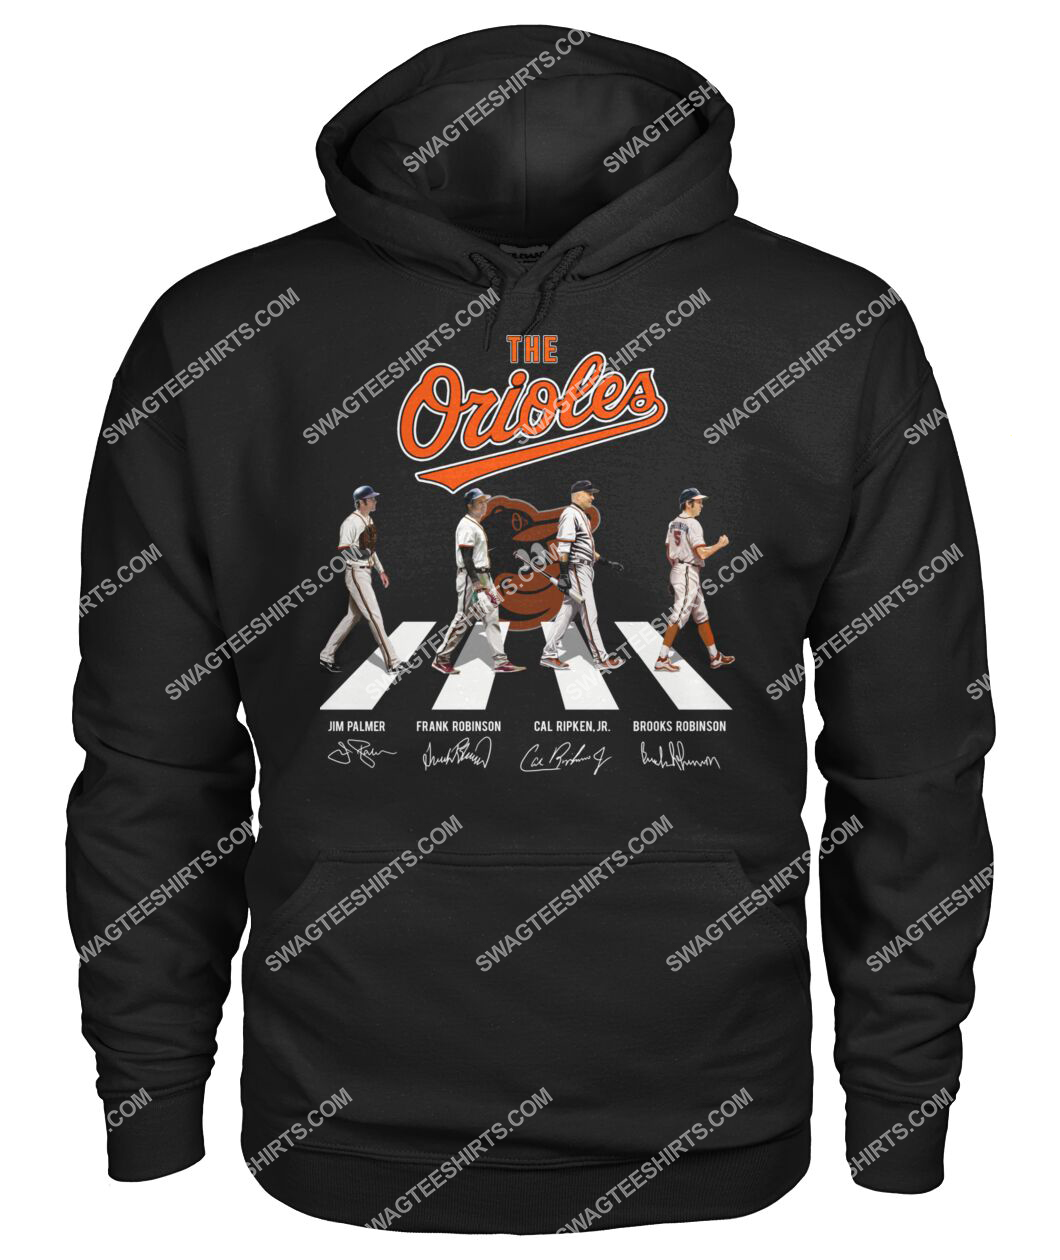 abbey road the baltimore orioles signatures hoodie 1